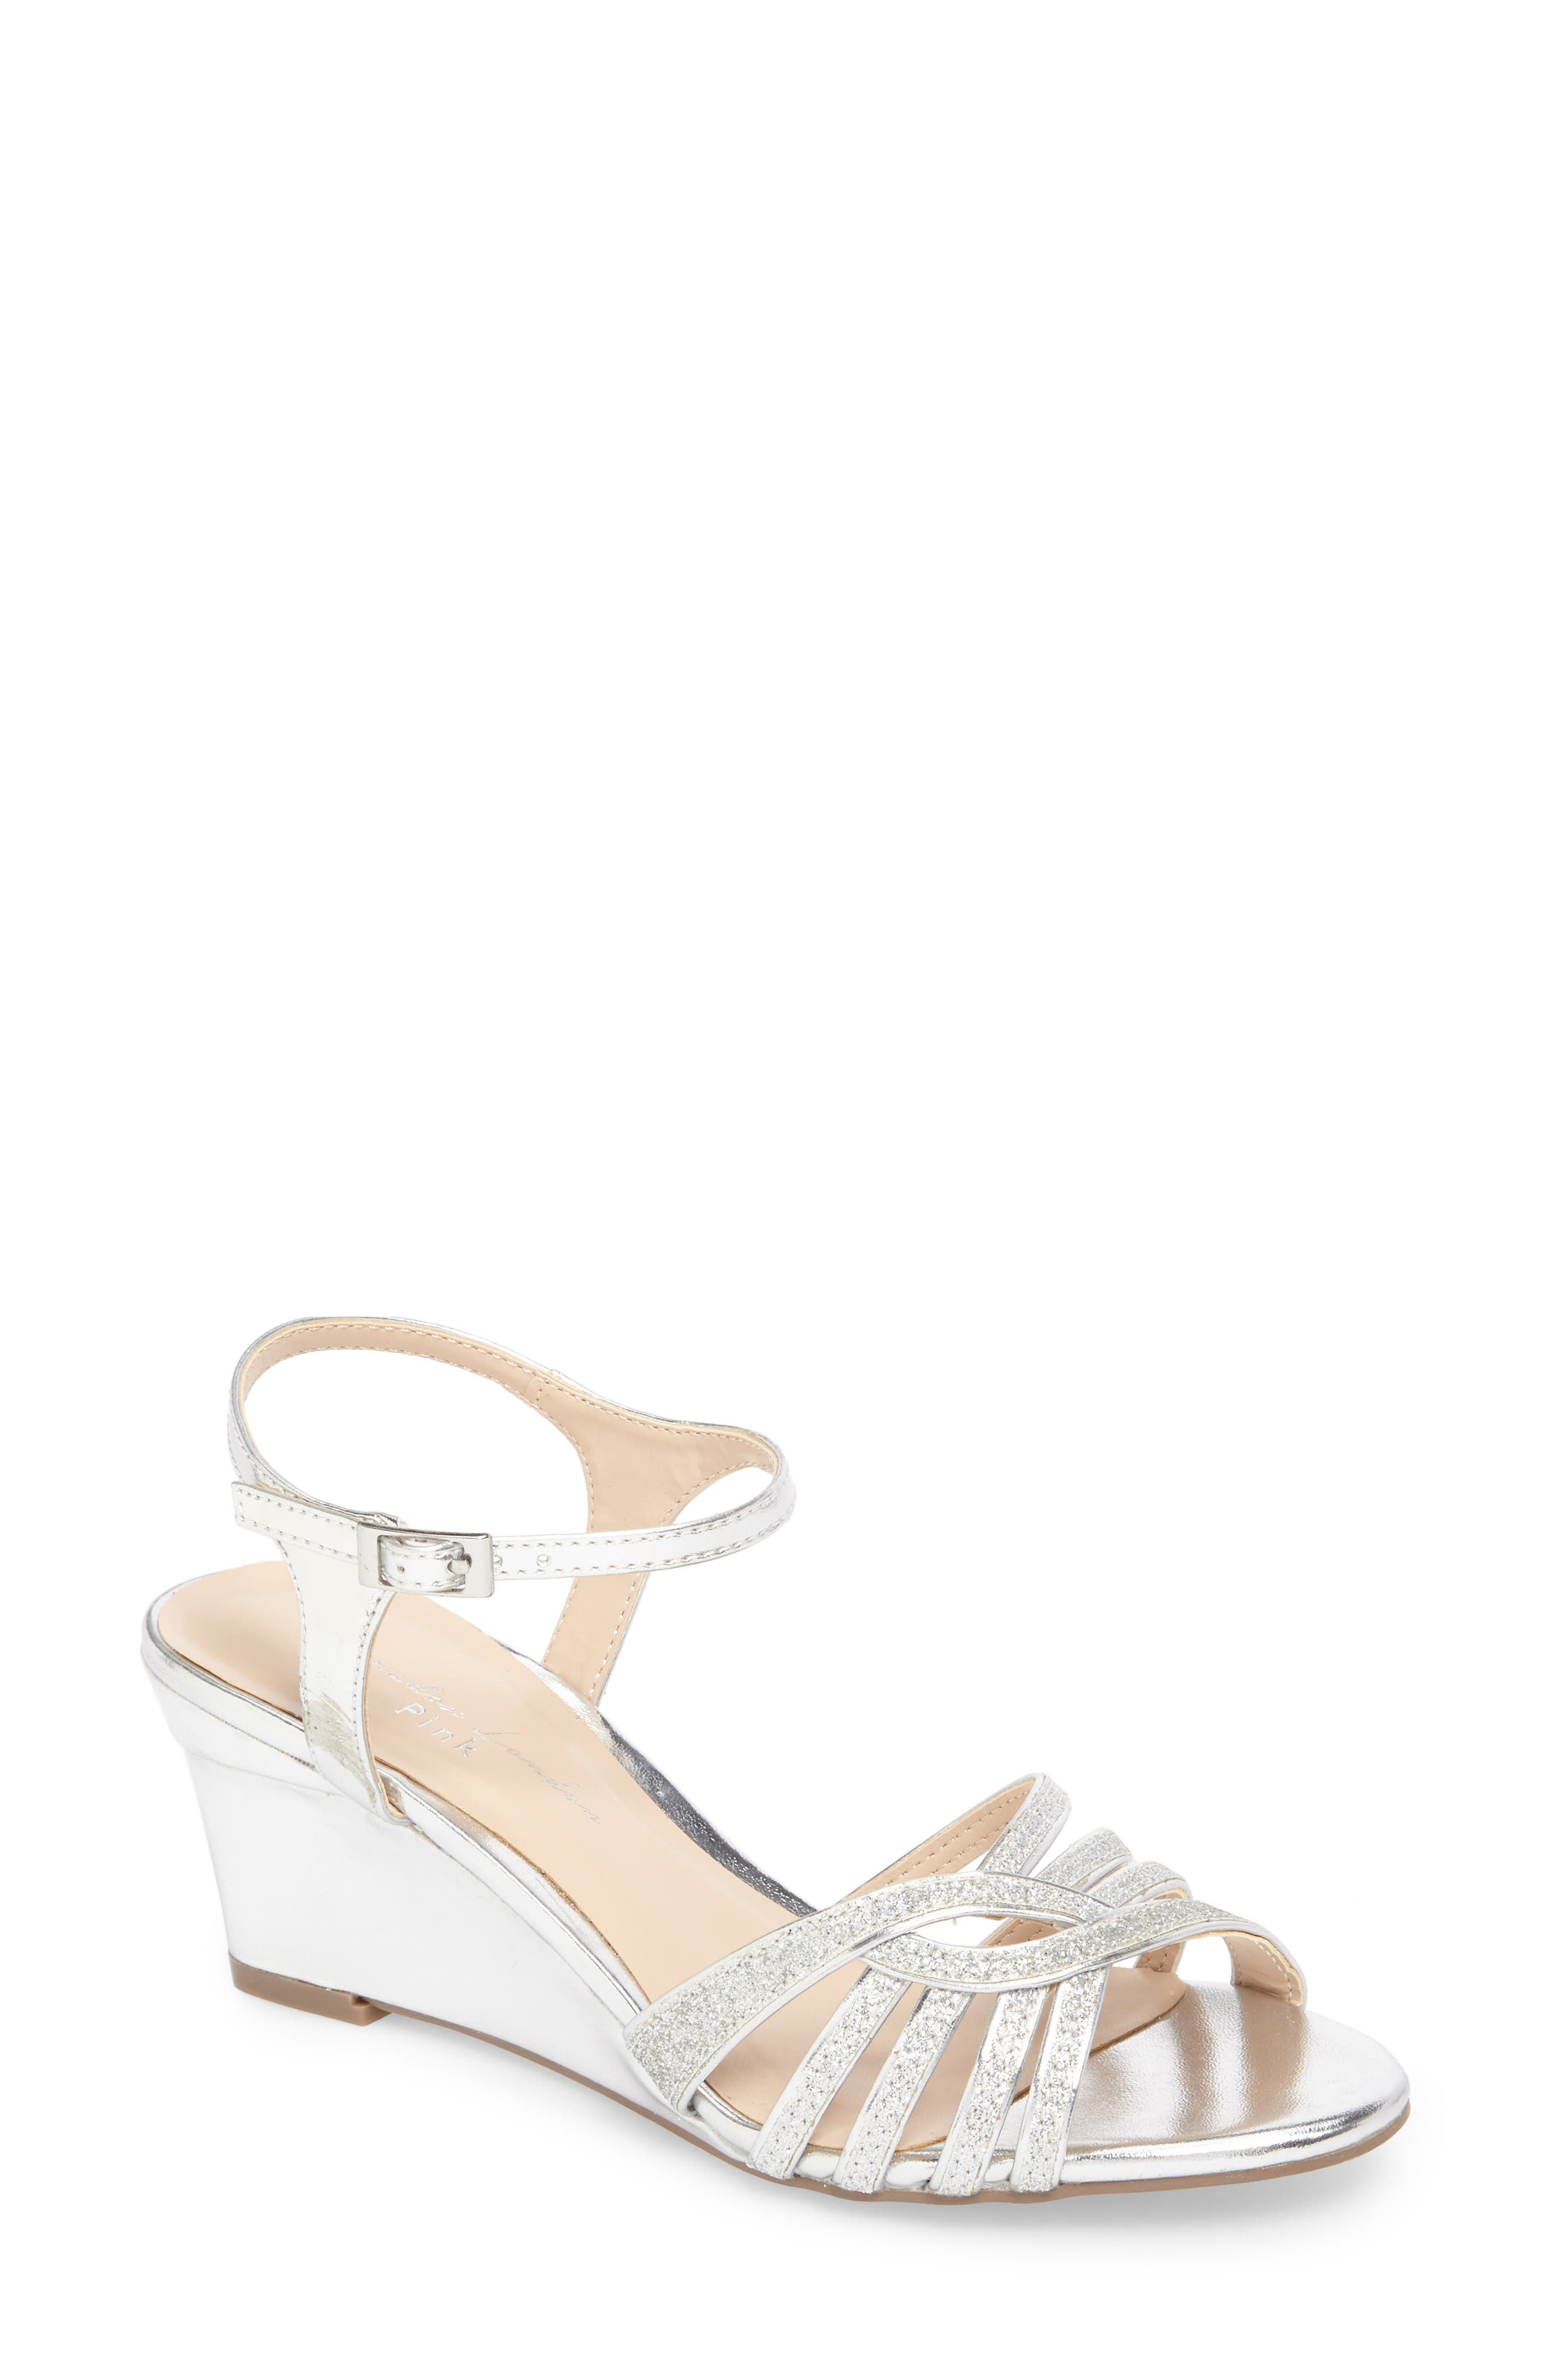 Karianne Wedge Sandal,                         Main,                         color, Silver